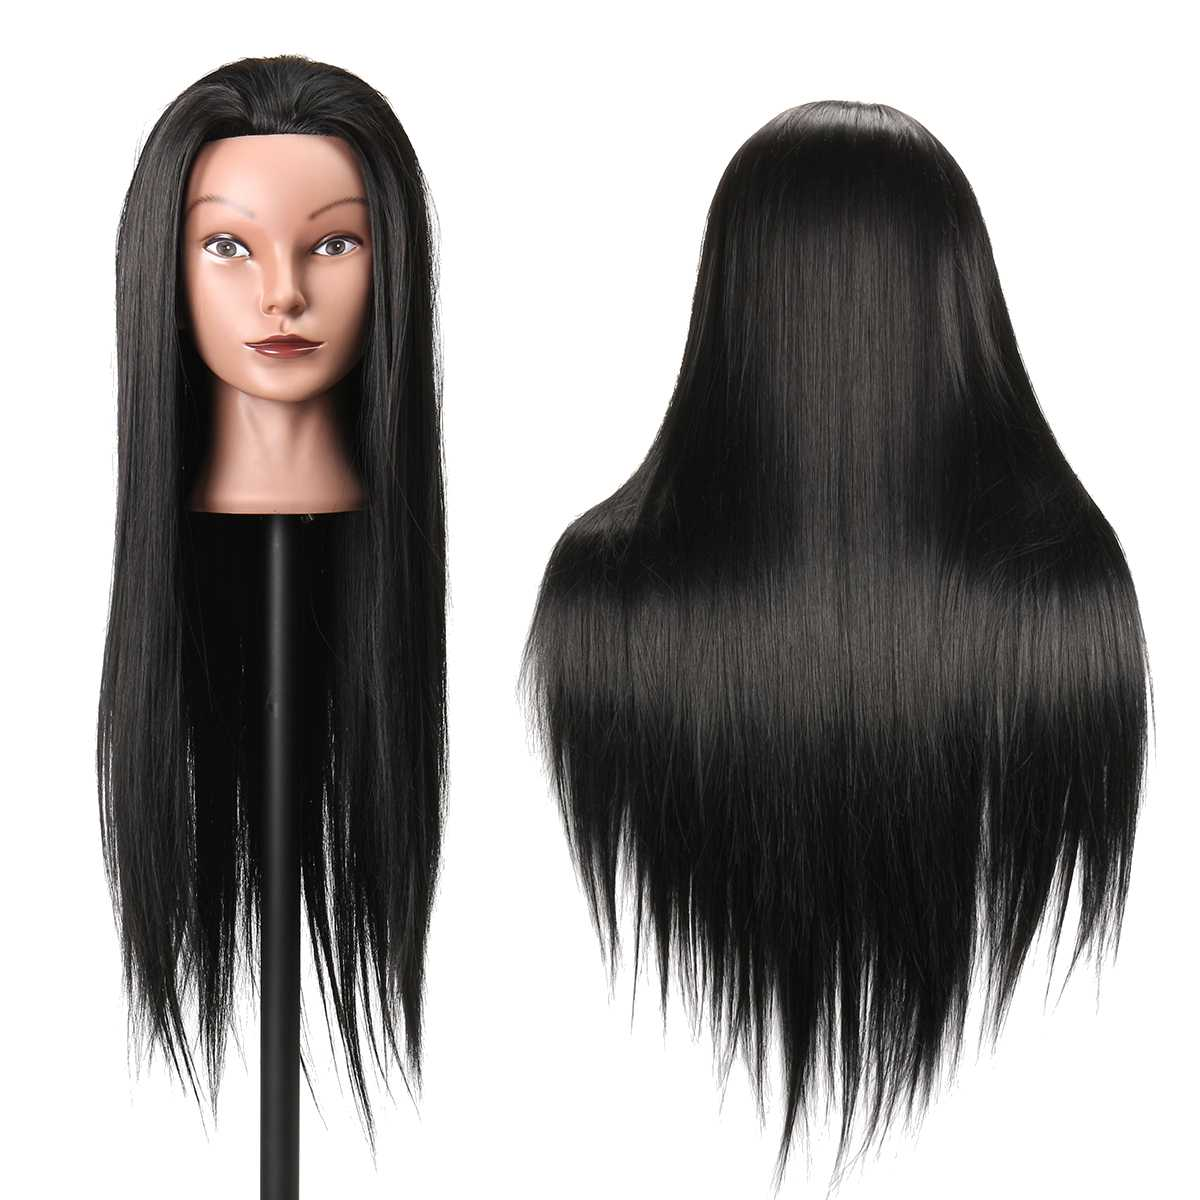 27 Inches 30% Real Hair Training Mannequin Head Black Hair Hairdressing Dummy Doll Human Heads Model For Salon Practice New 2020